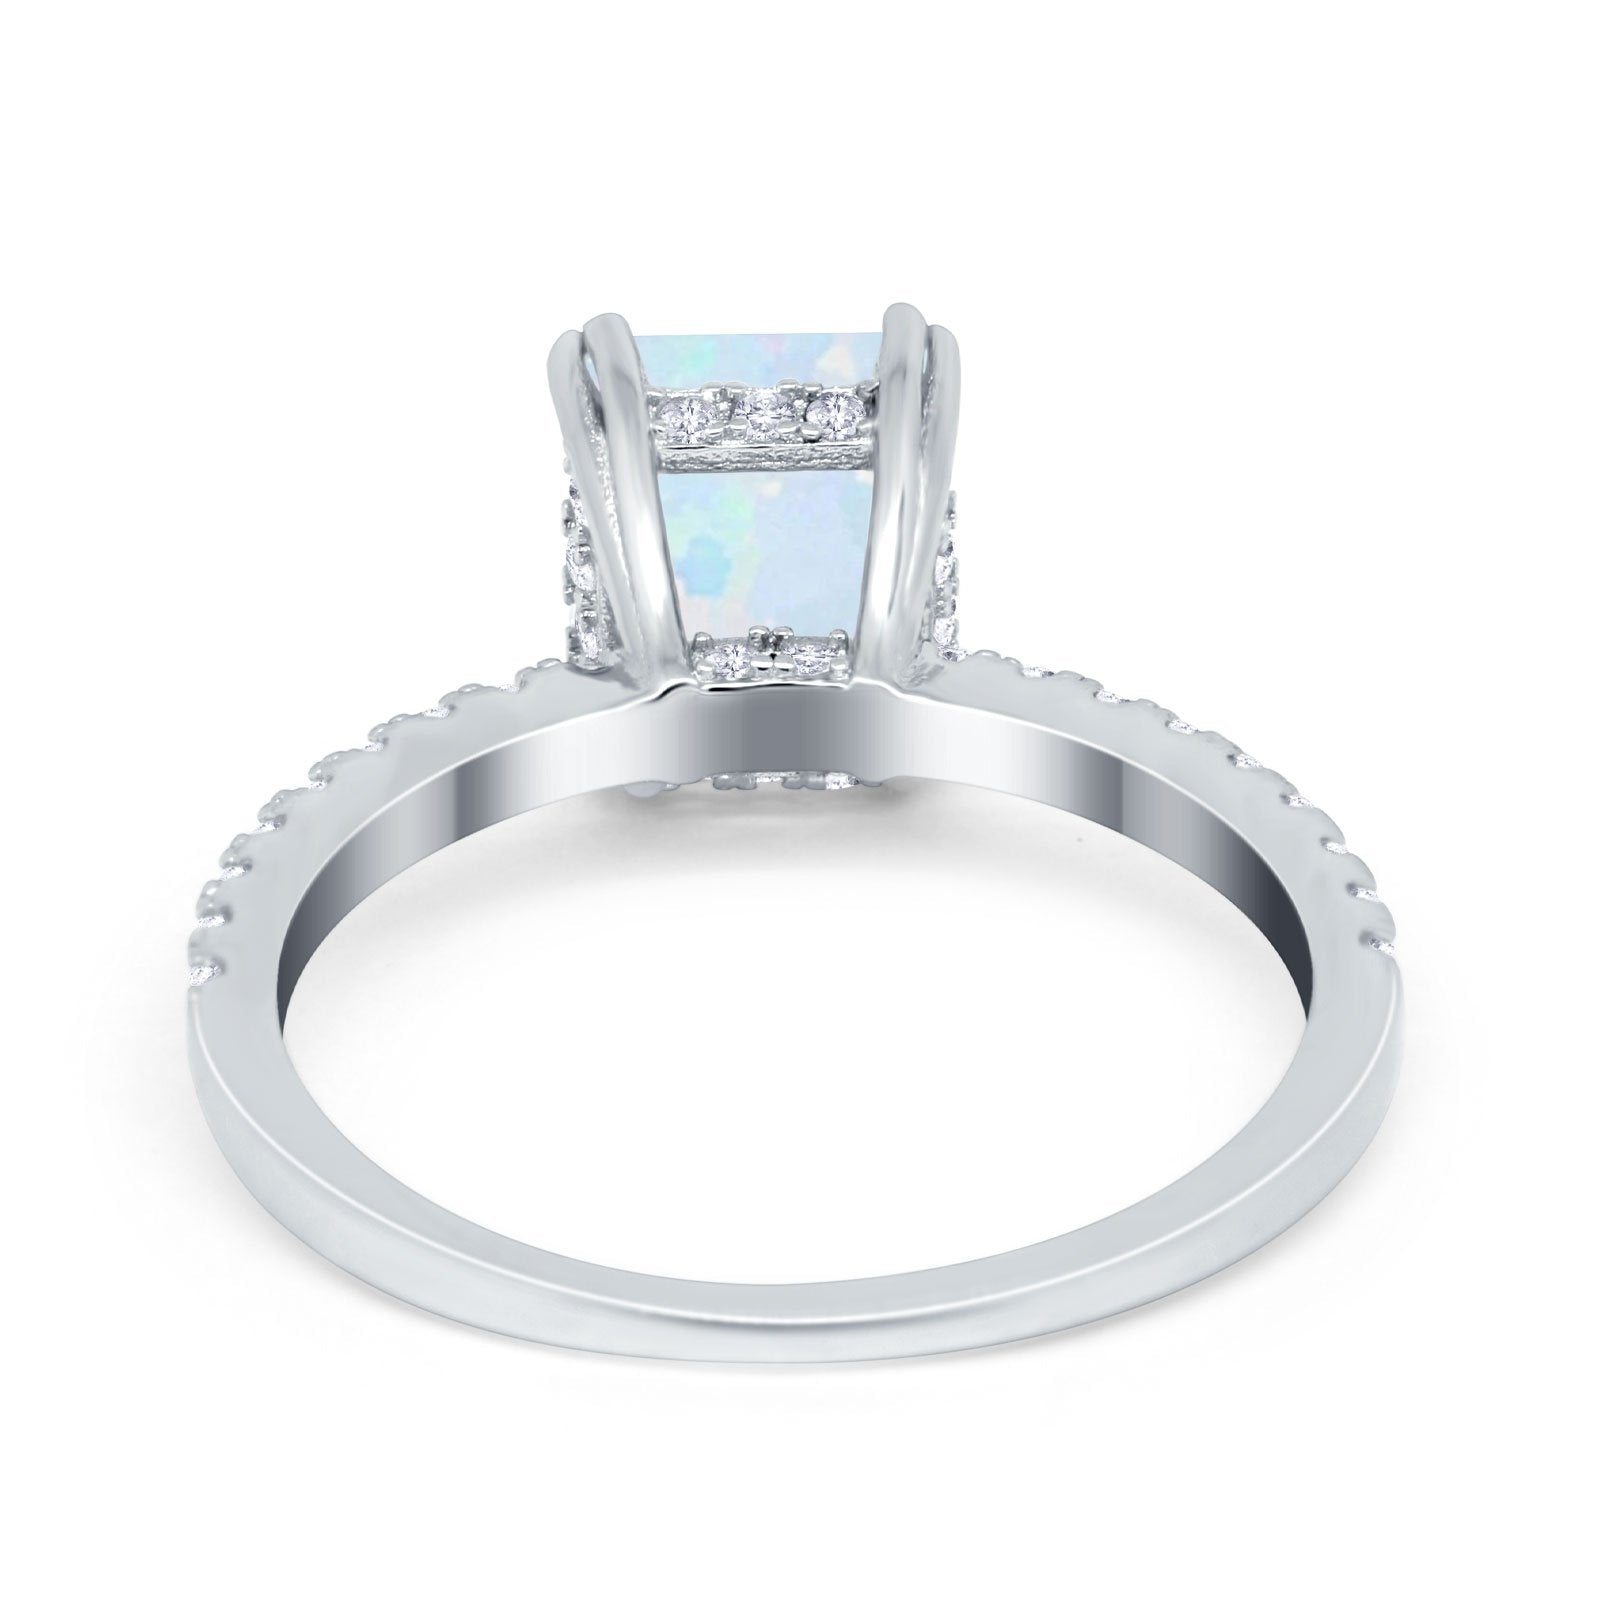 Art Deco Radiant Cut Engagement Ring Simulated Cubic Zirconia 925 Sterling Silver